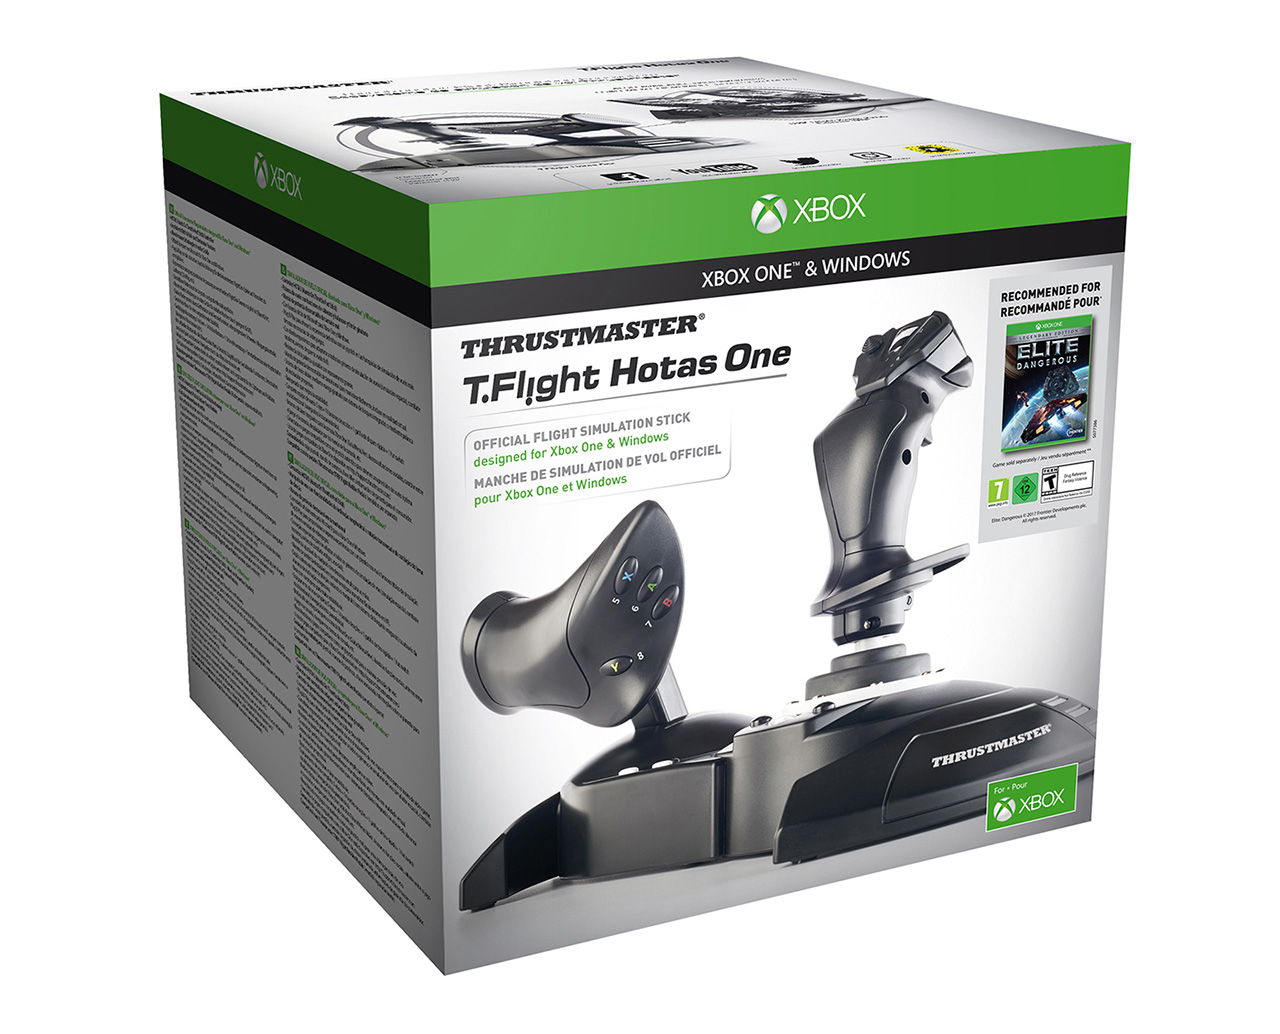 Thrustmaster T Flight Hotas One Xbox One Review | GamingShogun